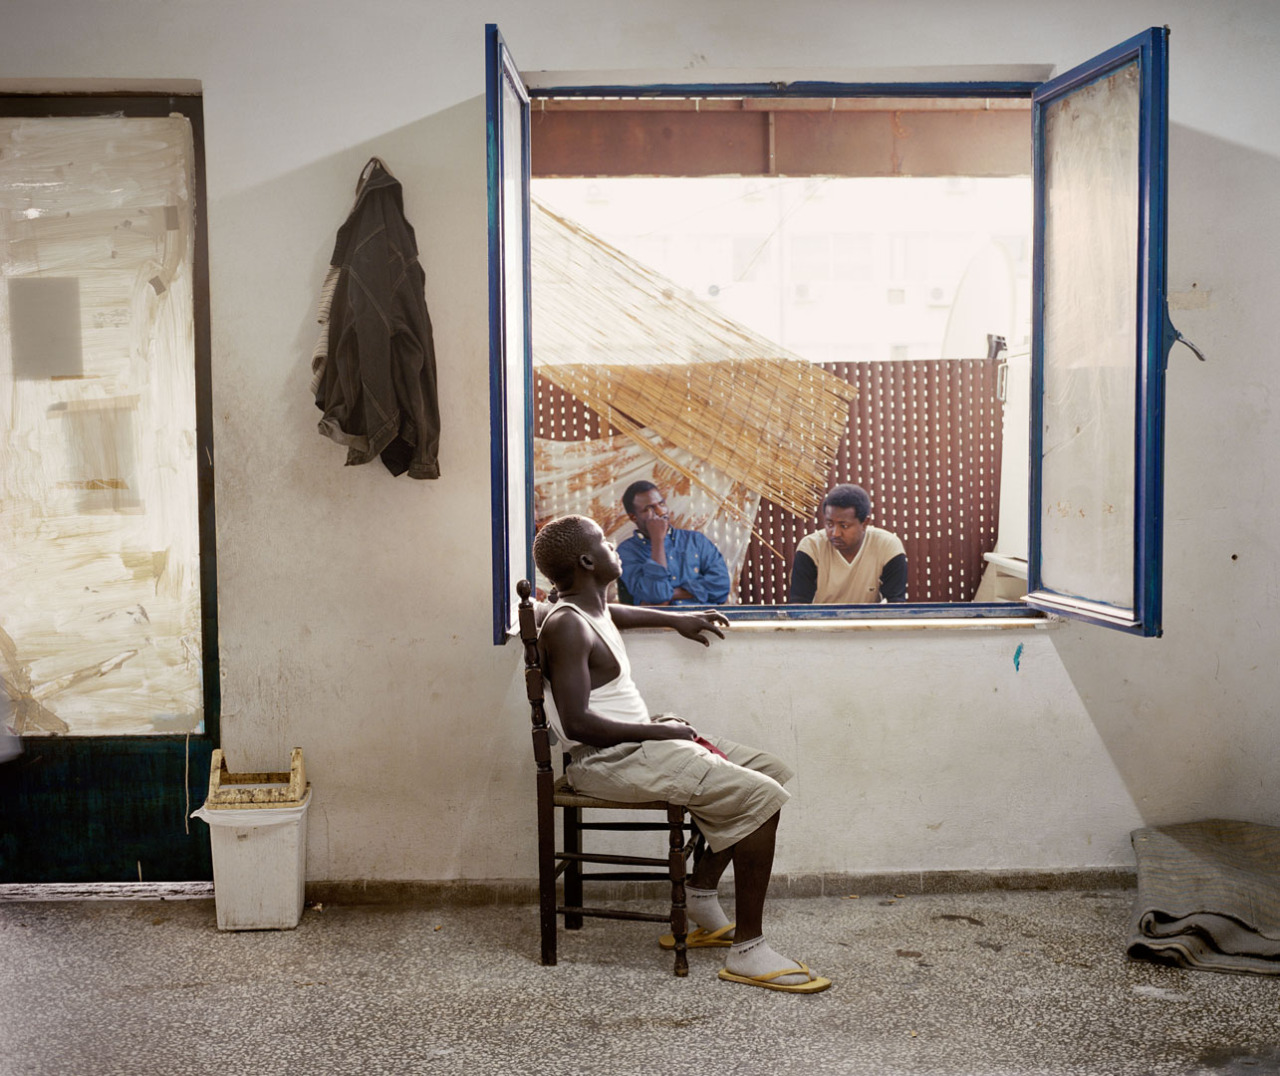 manufactoriel:  Jim Goldberg photographed refugees in Greece who had fled their homelands due to war, disease and/or poverty. Goldberg later travelled to the refugees' countries of origin for the Open See project. He collected the stories of refugees seeking shelter and hoping for a better life. Jim Goldberg and Framing Watching Oprah is the title of a photo of immigrants that Goldberg took in Greece. By intentionally choosing how to frame the photo, Goldberg provides a great deal of information about the immigrants' environment. If he had chosen to take a close-up instead (see right-hand photo), the viewer would have had far less information. Goldberg chose a wide-angle image which allows you to include the immigrants' surroundings in the story you imagine about the photo. Would you have guessed that this photo was taken in Greece? The title Watching Oprah refers to a TV that the men are watching an Oprah Winfrey show on. The TV is outside the picture, so the title is necessary to know what the men are doing. The framing allows us to see certain things in the photo but keeps us from seeing other things. Goldberg lets us see how the men live, for instance, but not specifically what they are doing. In taking your own photo, first think about what you want to show and what you want to leave up to the viewer's imagination. This way you can tell a very special story without giving everything away.